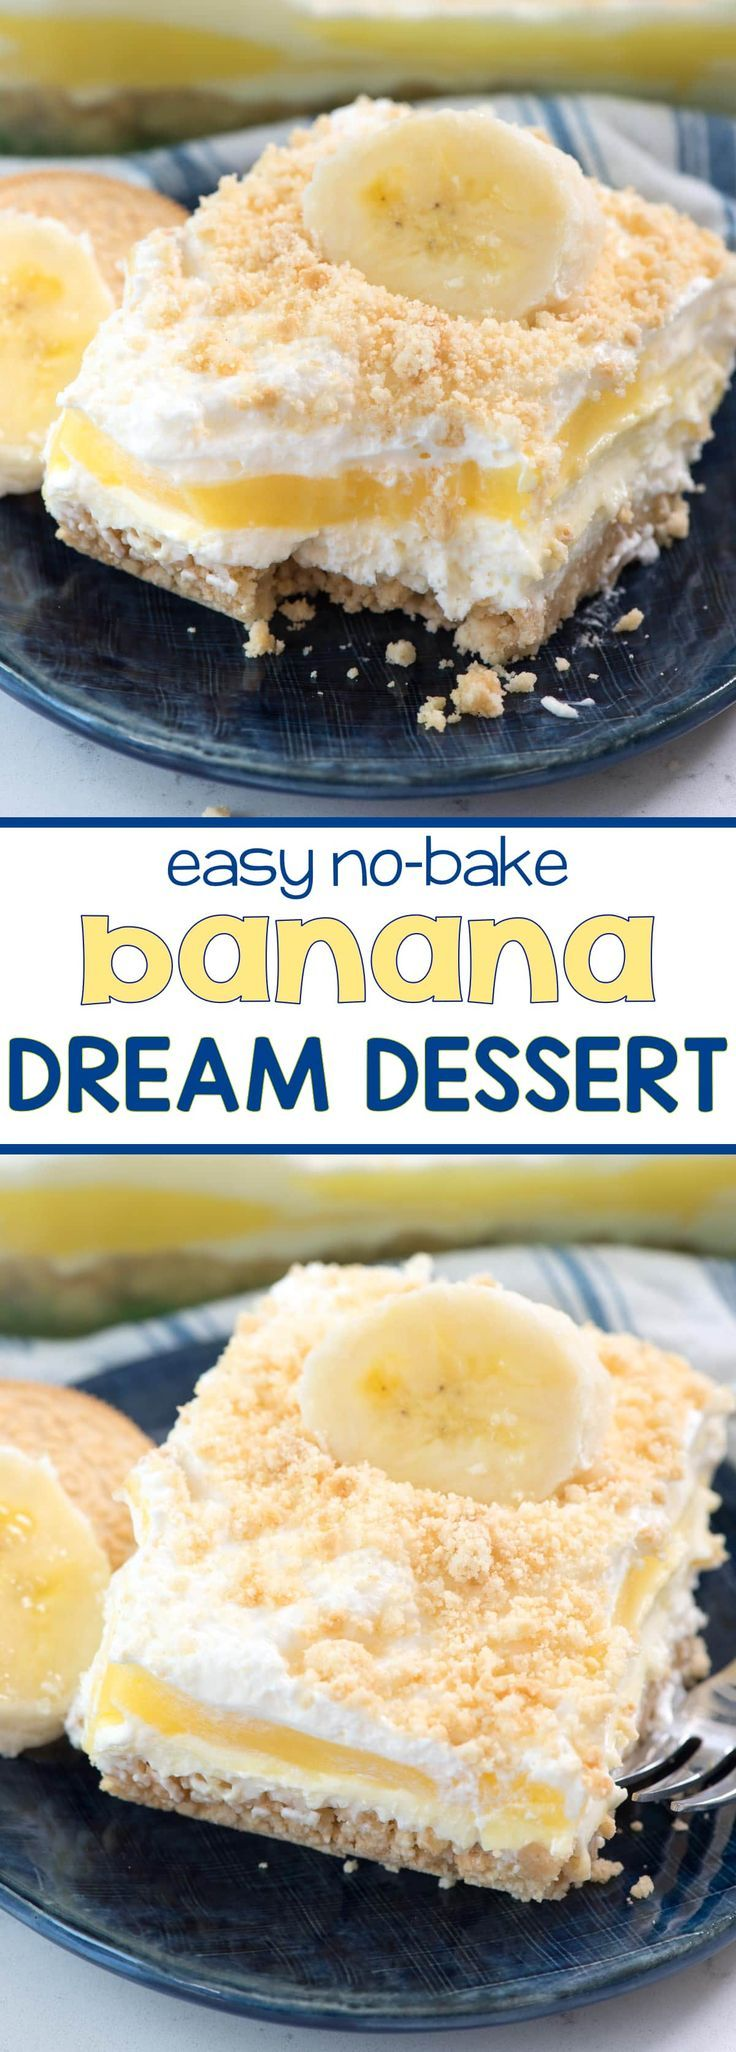 No Bake Banana Pudding Dream Dessert - this easy dessert lasagna recipe is made with BANANA pudding! It's layered with no bake cheesecake and a Golden Oreo Crust! #easydesserts